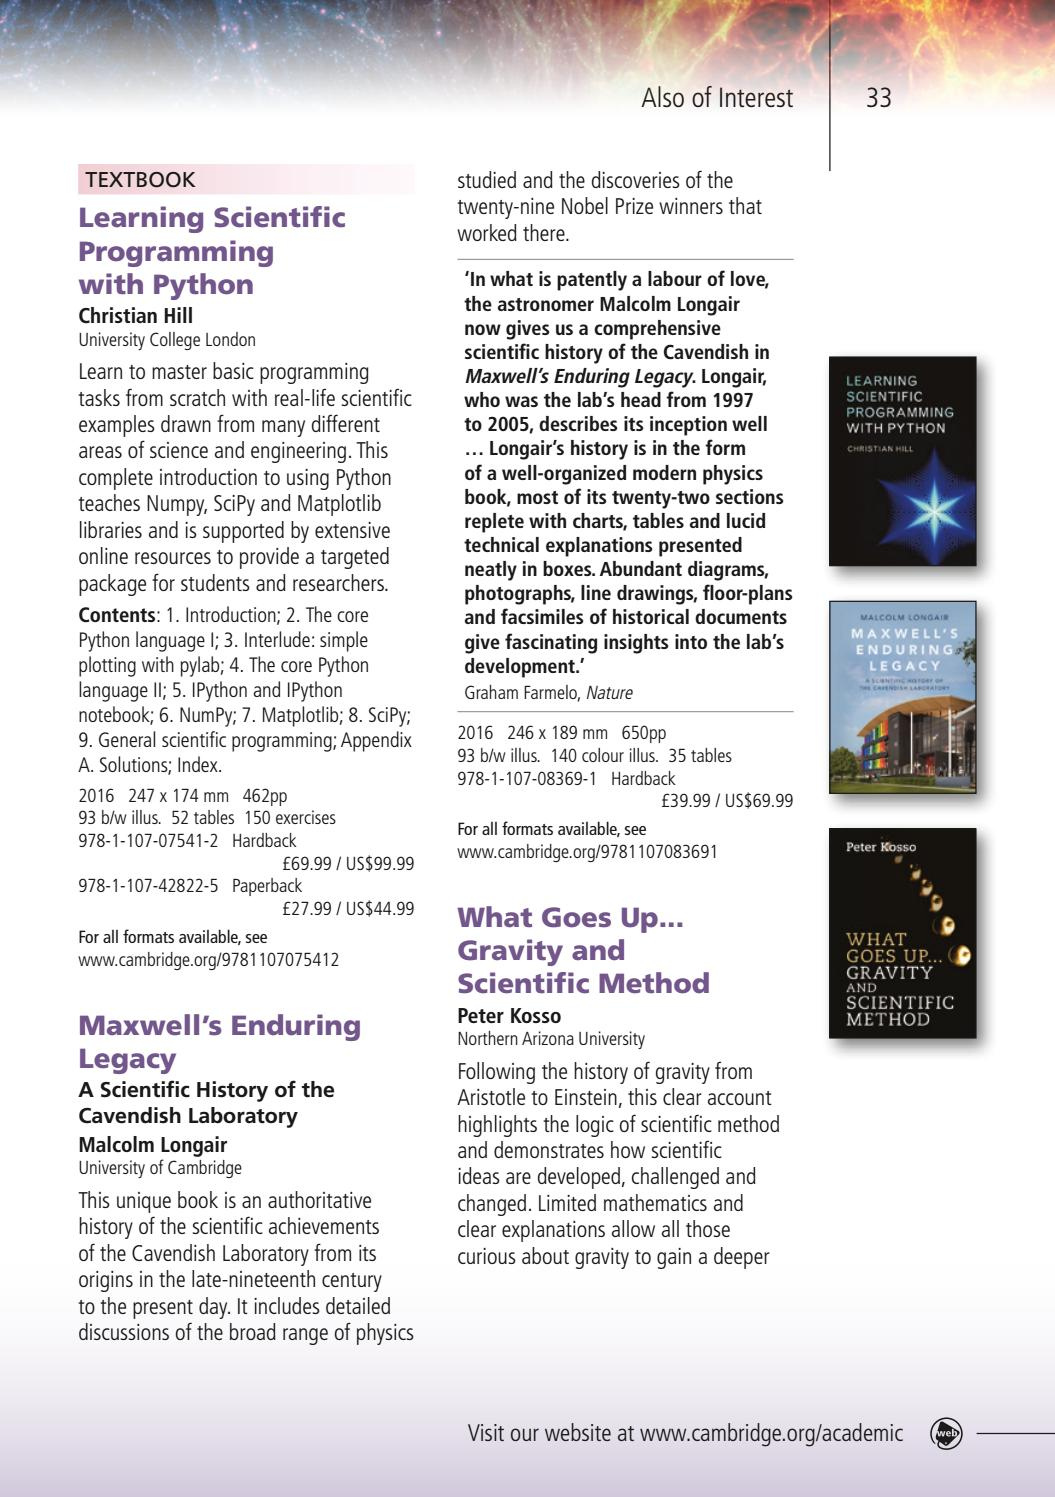 Astronomy, Astrophysics & Planetary Science 2017 by